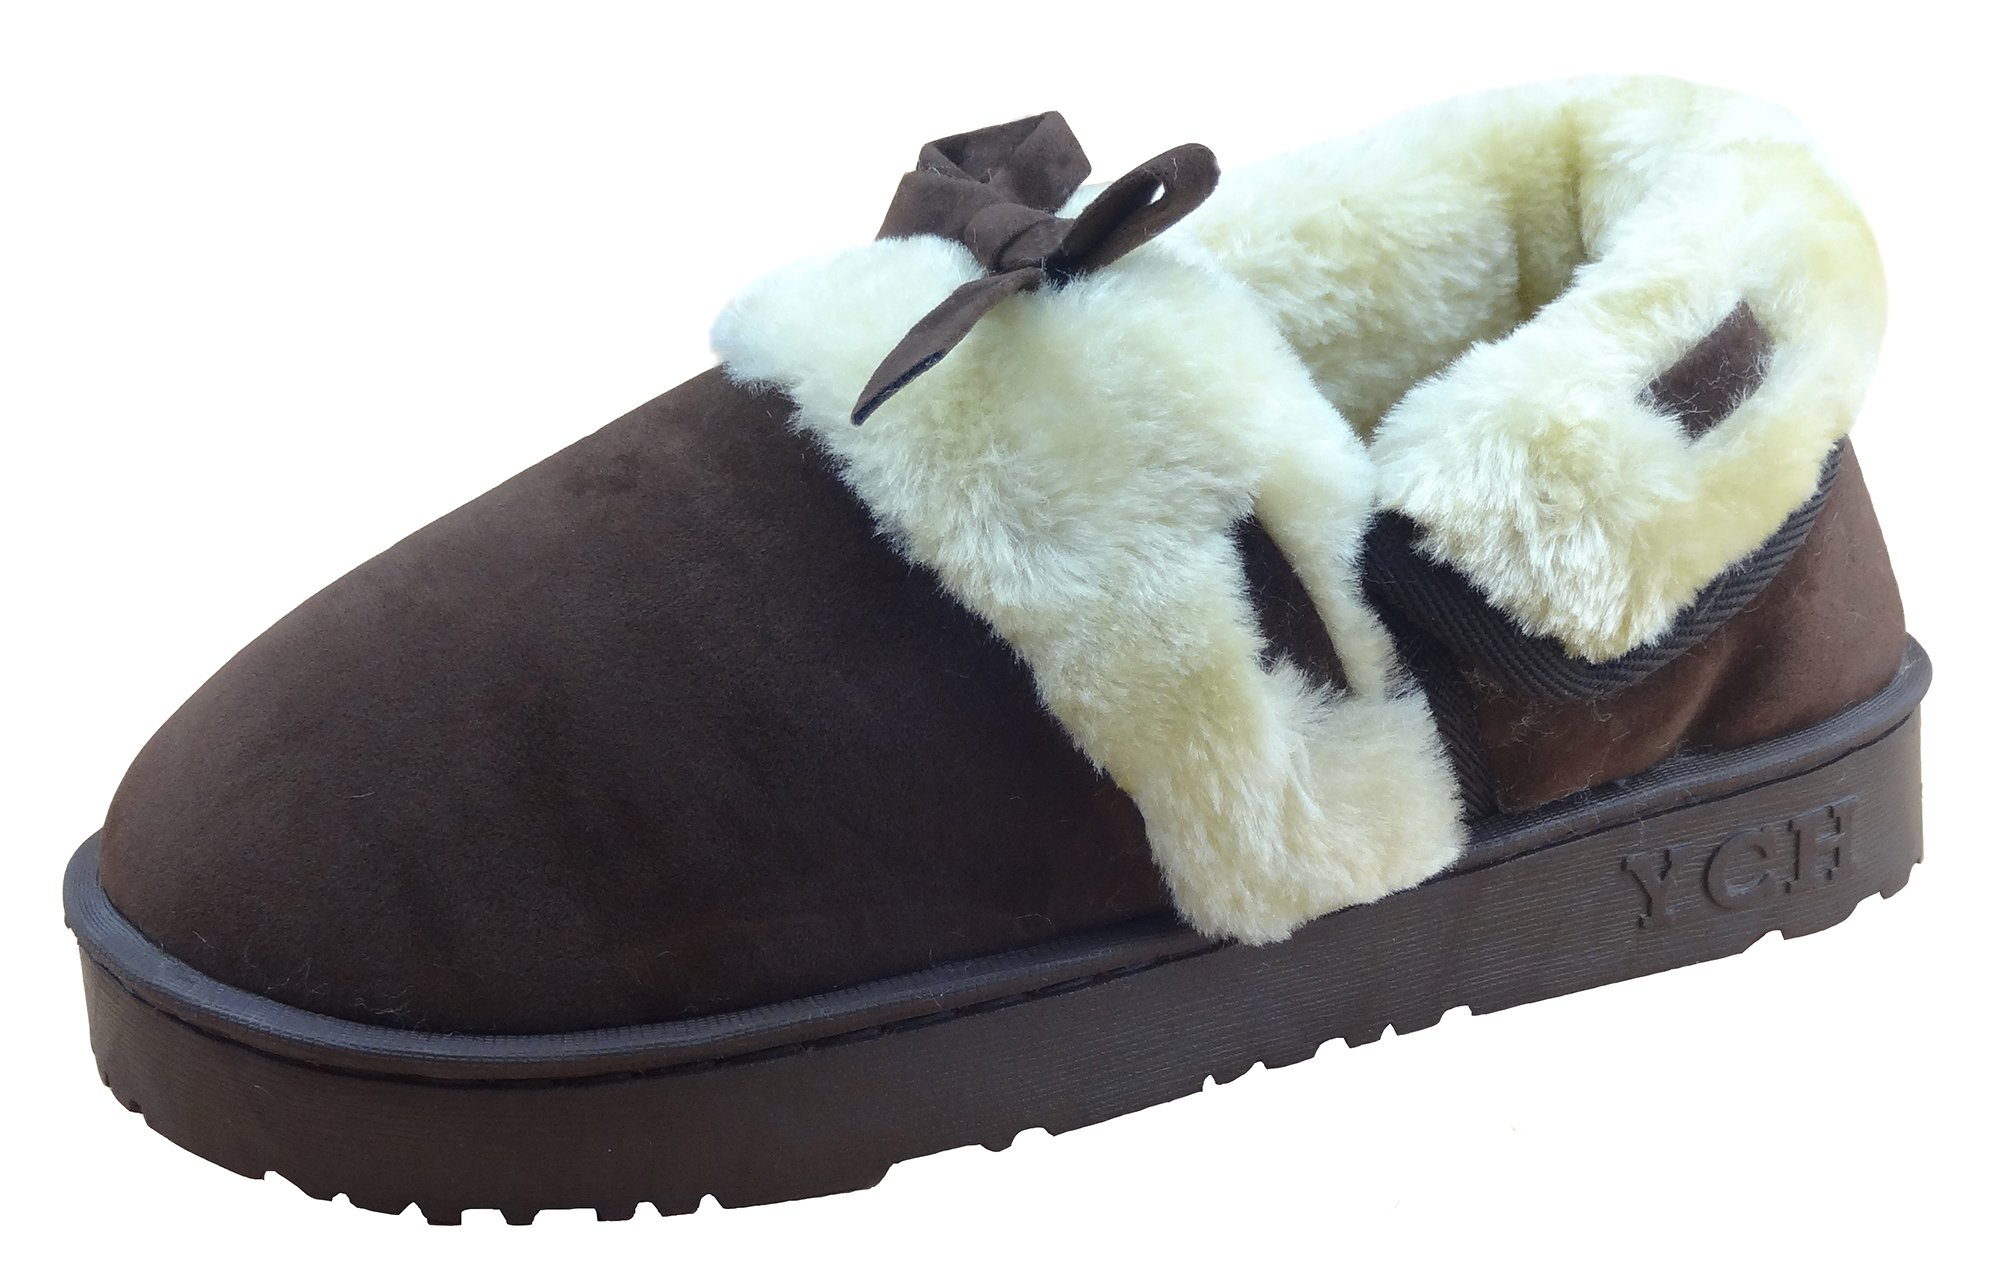 IDIFU Boy's Girl's Bow Closed-Back Faux Fur Home Outdoor Slippers Boots Brown 12-13.5 M US Little Kid